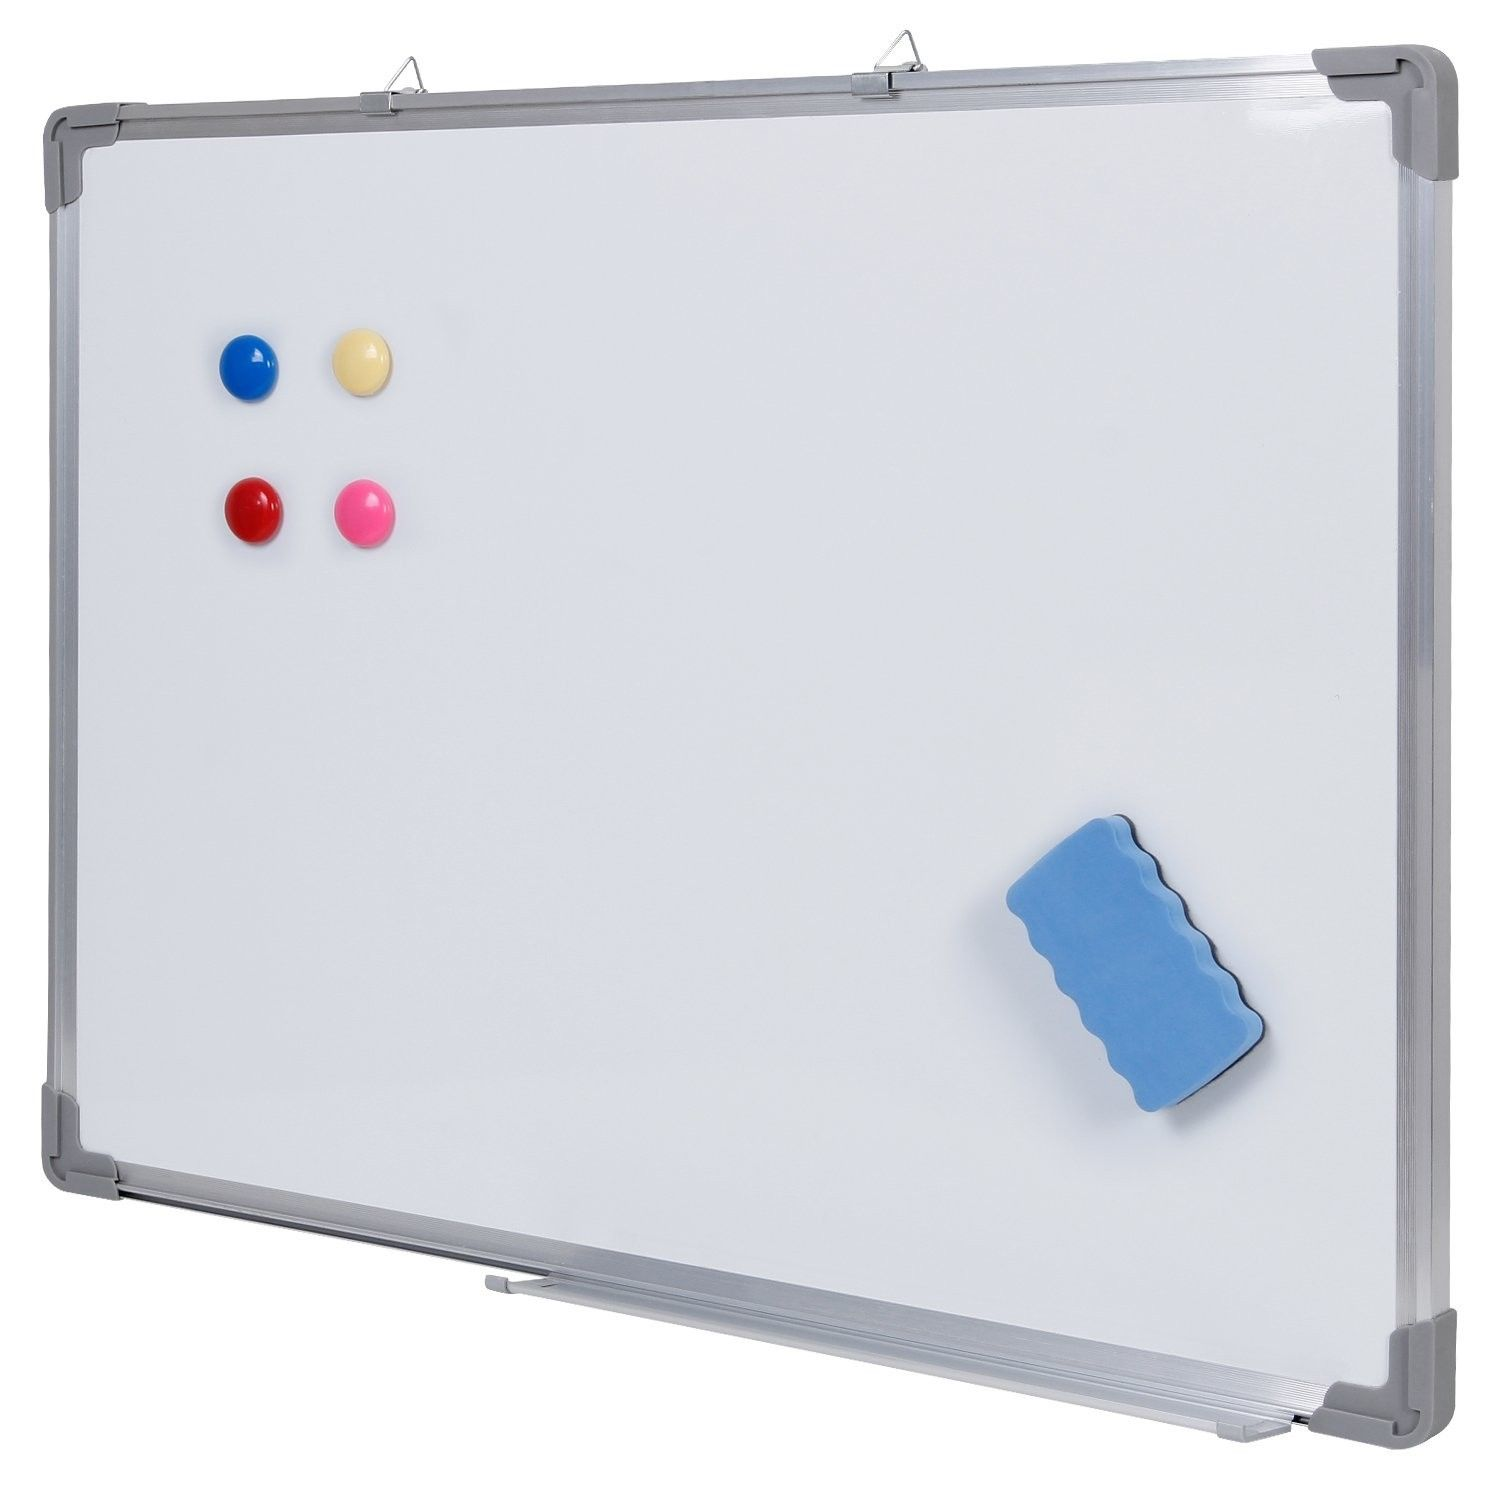 Magnet Whiteboard Magnetic Office Whiteboard Office Magnetic White Board